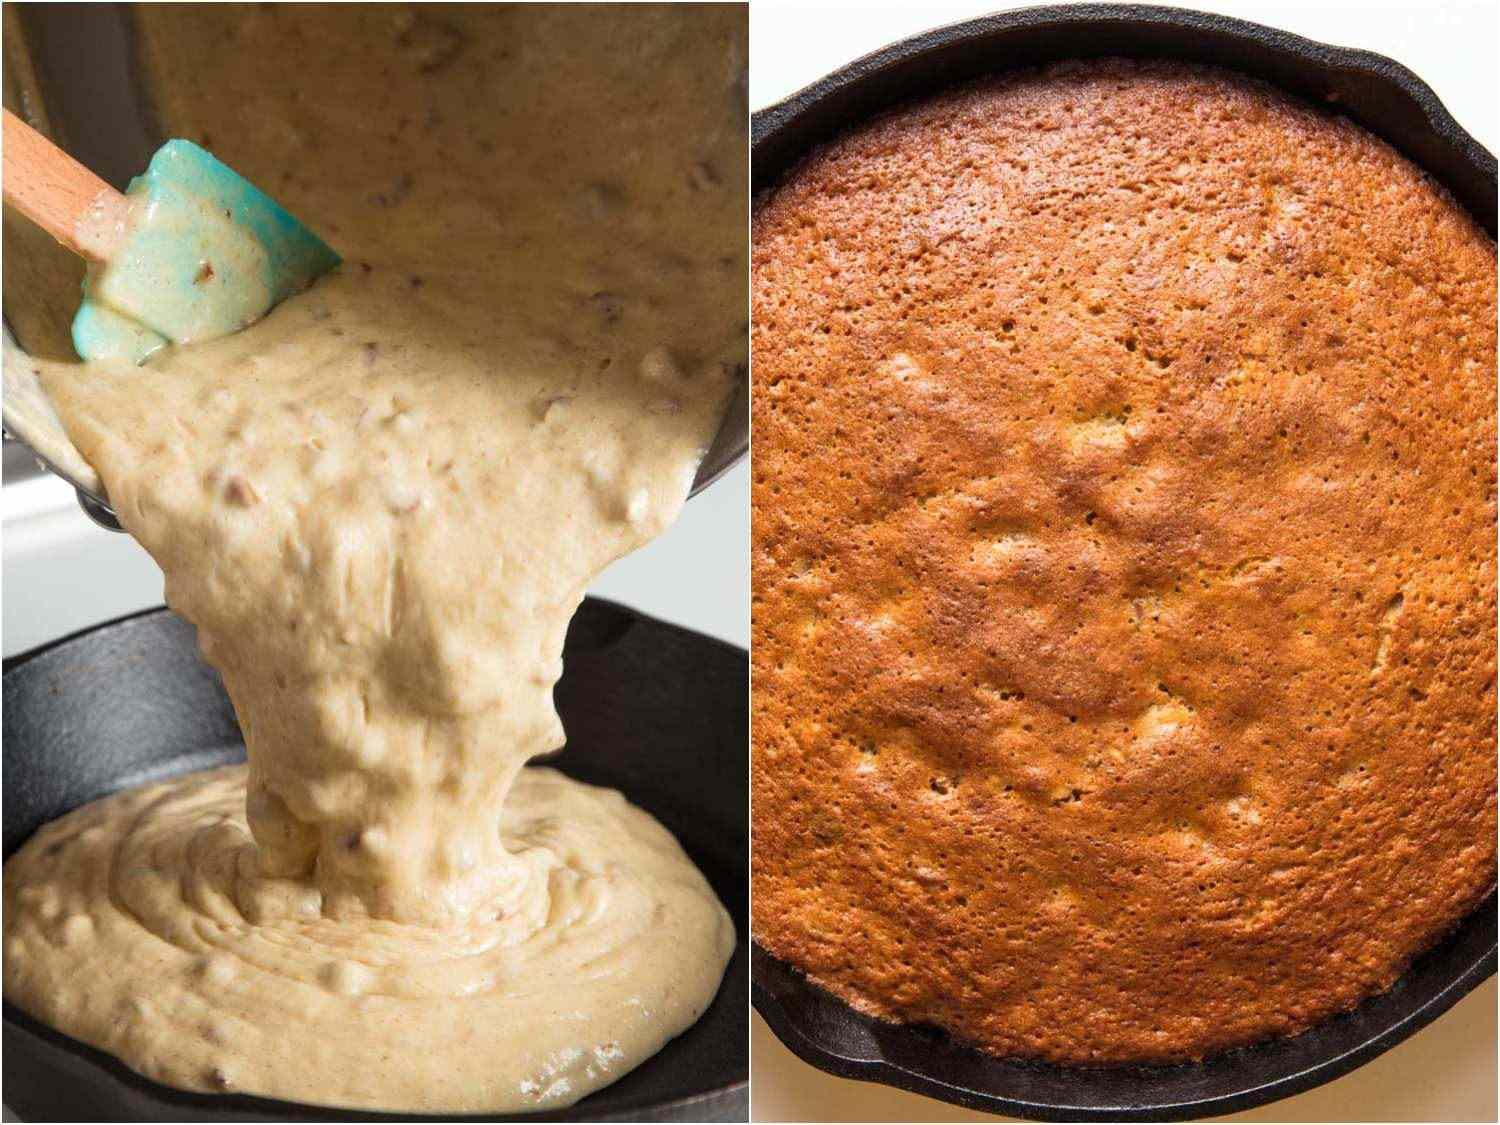 Side-by-side of raw cake batter and baked skillet cake.